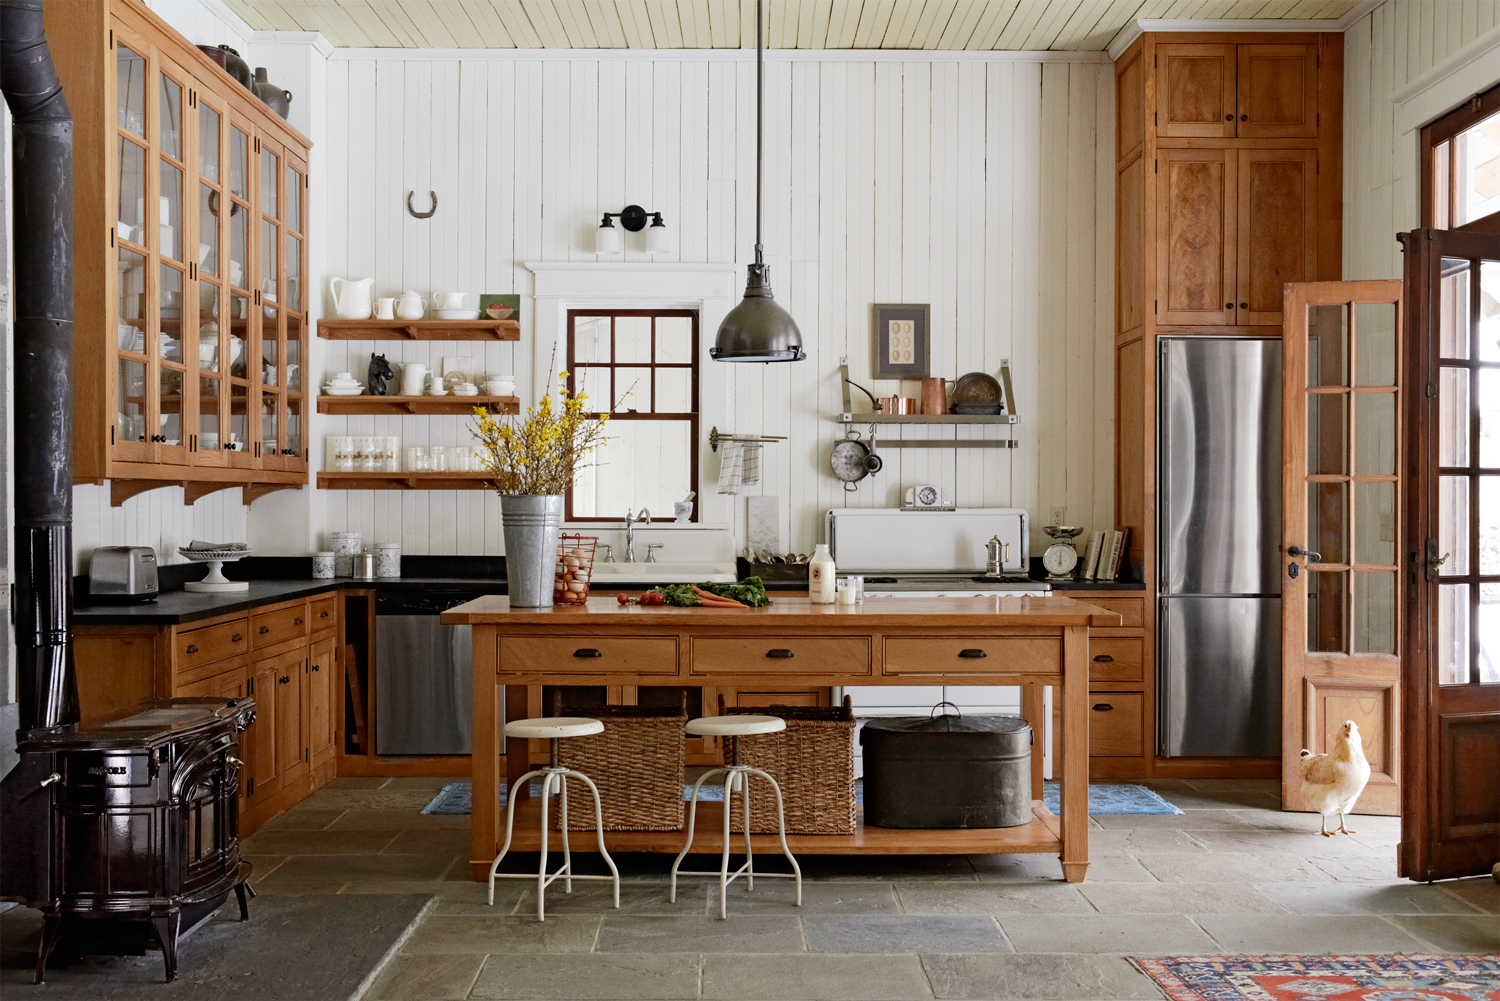 Best Wood Ideas for Kitchen Decorating 3